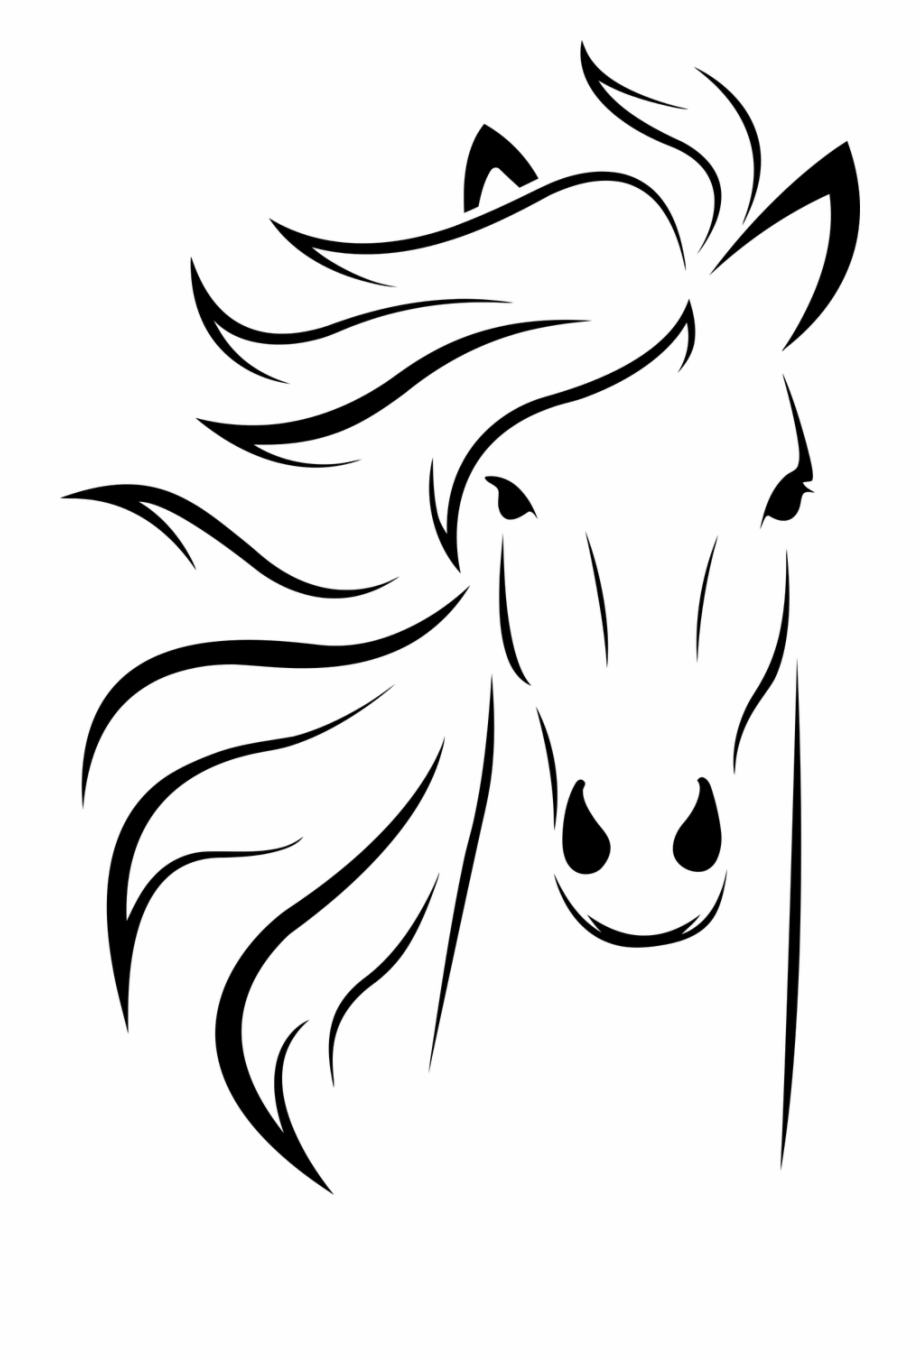 Download High Quality horse clipart black and white design